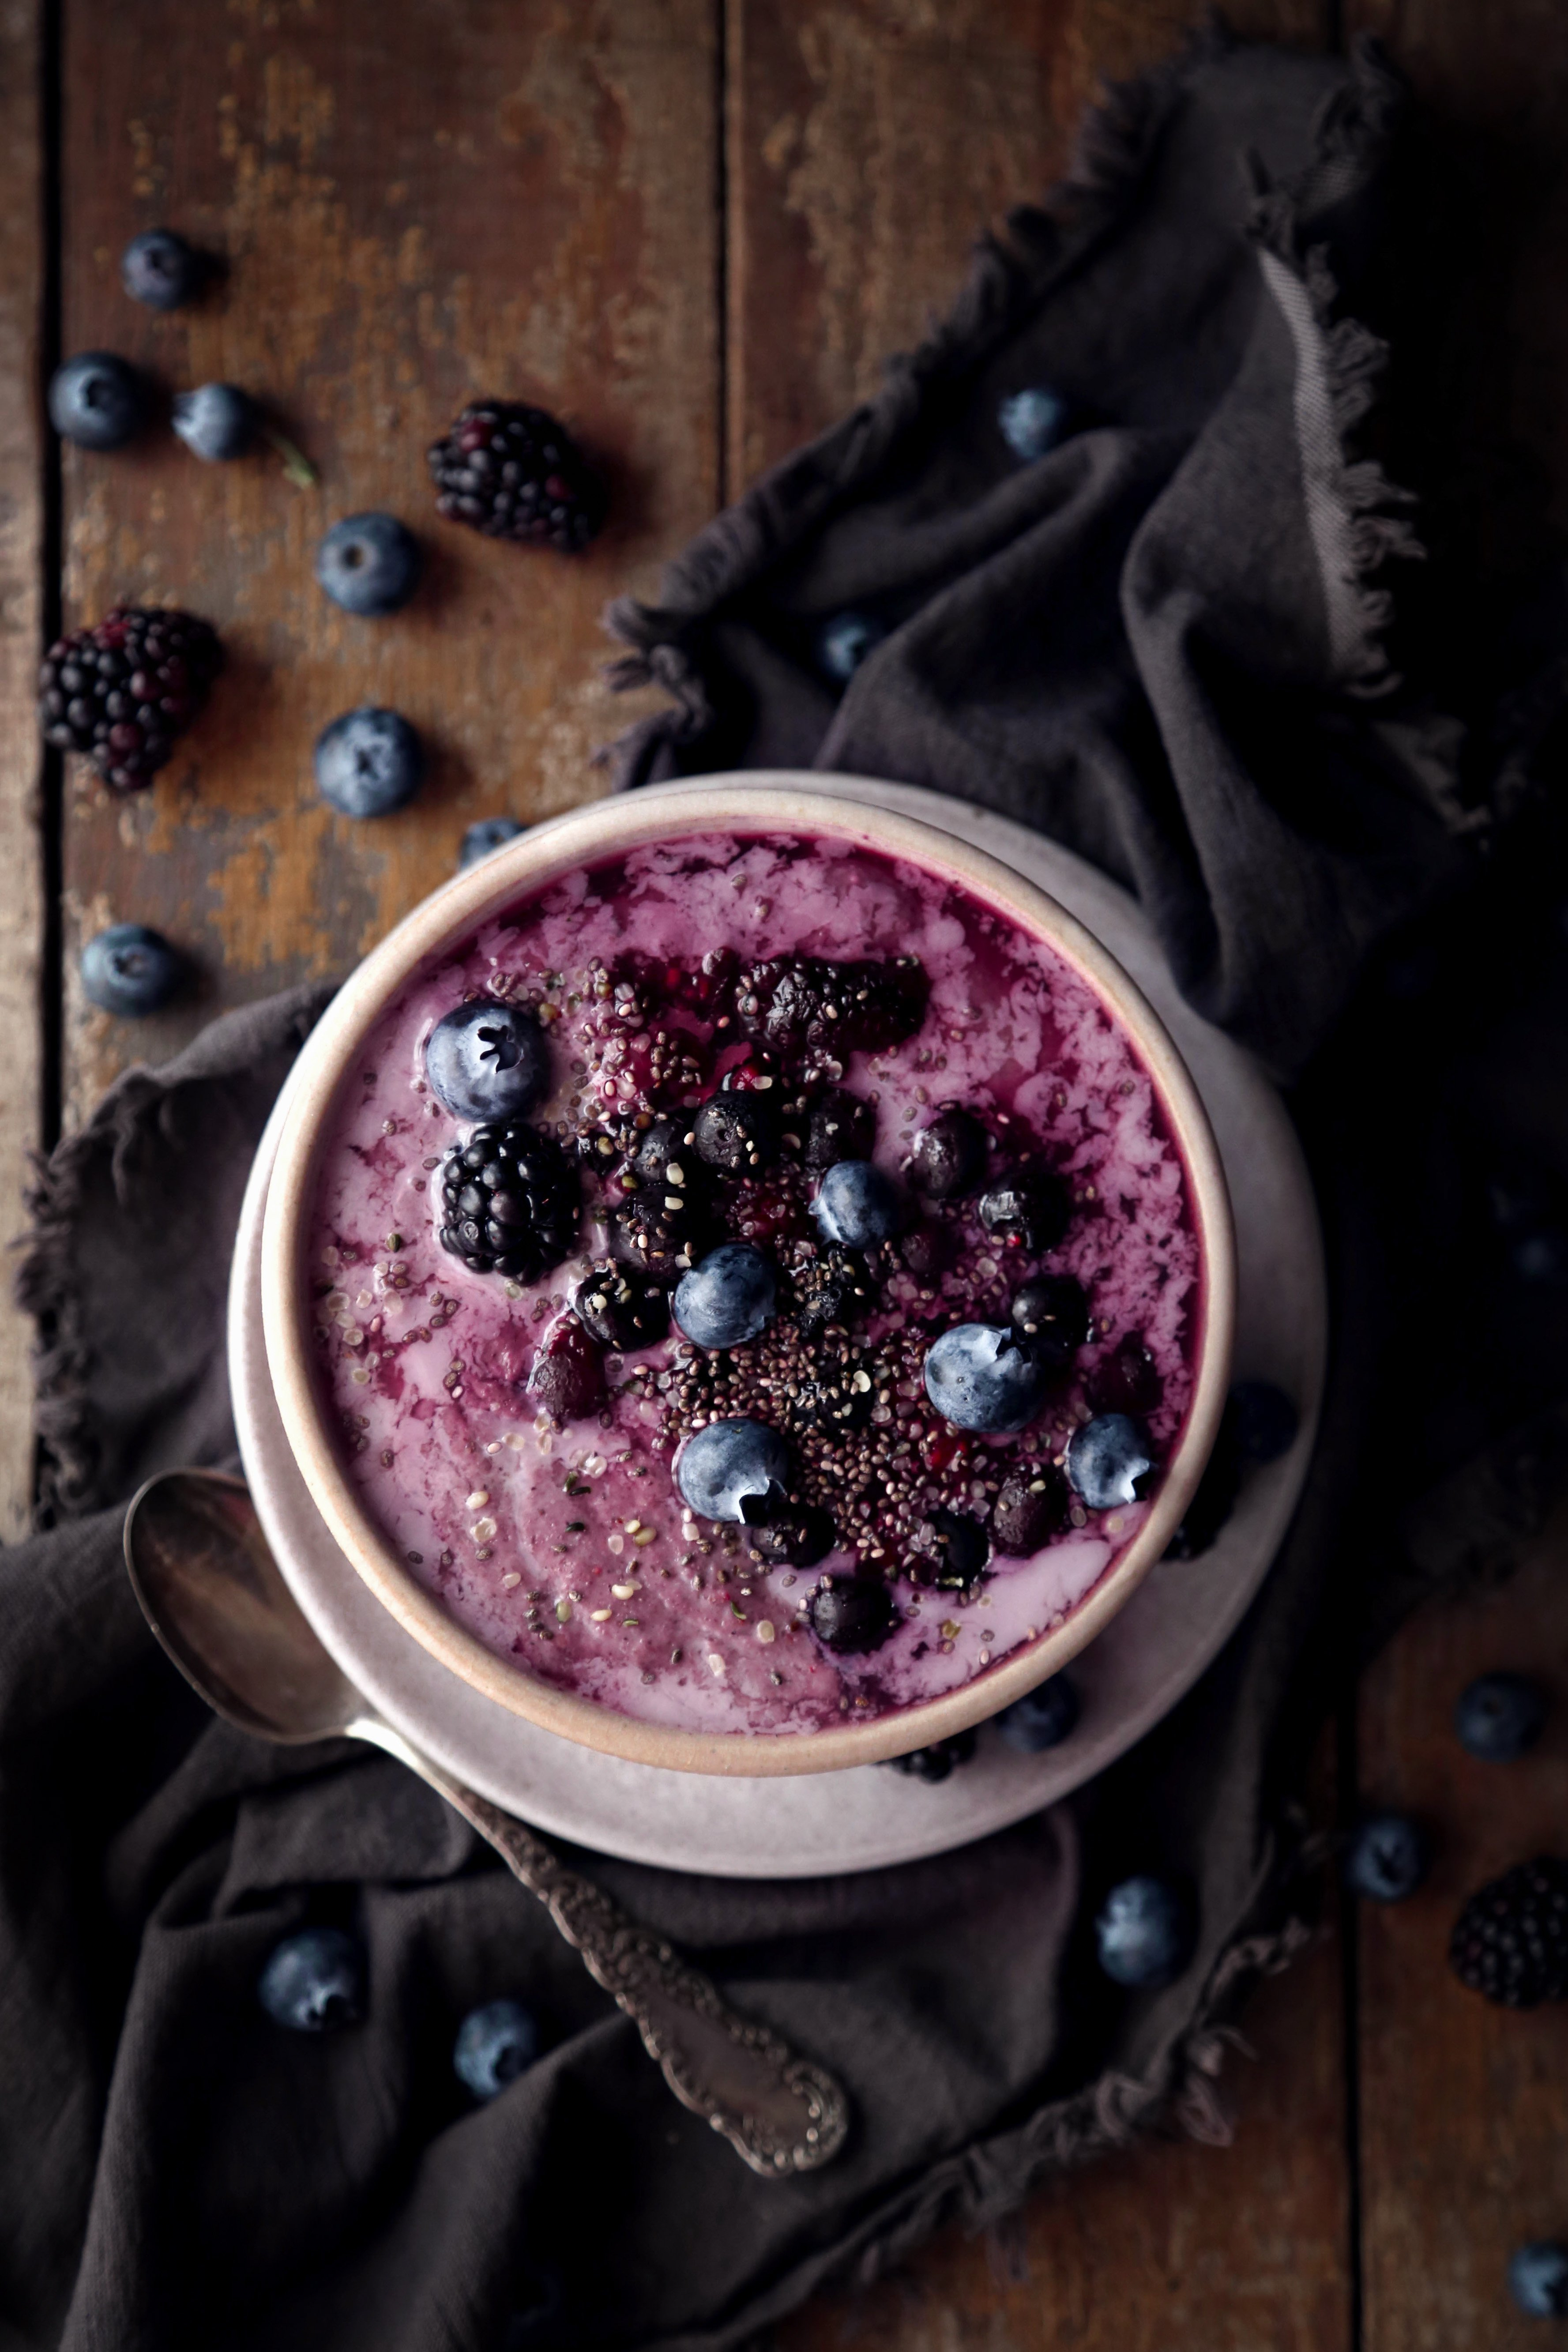 Creamy Mixed Berry Oatmeal | Free of gluten, dairy, and refined sugar. Vegan/vegetarian friendly!